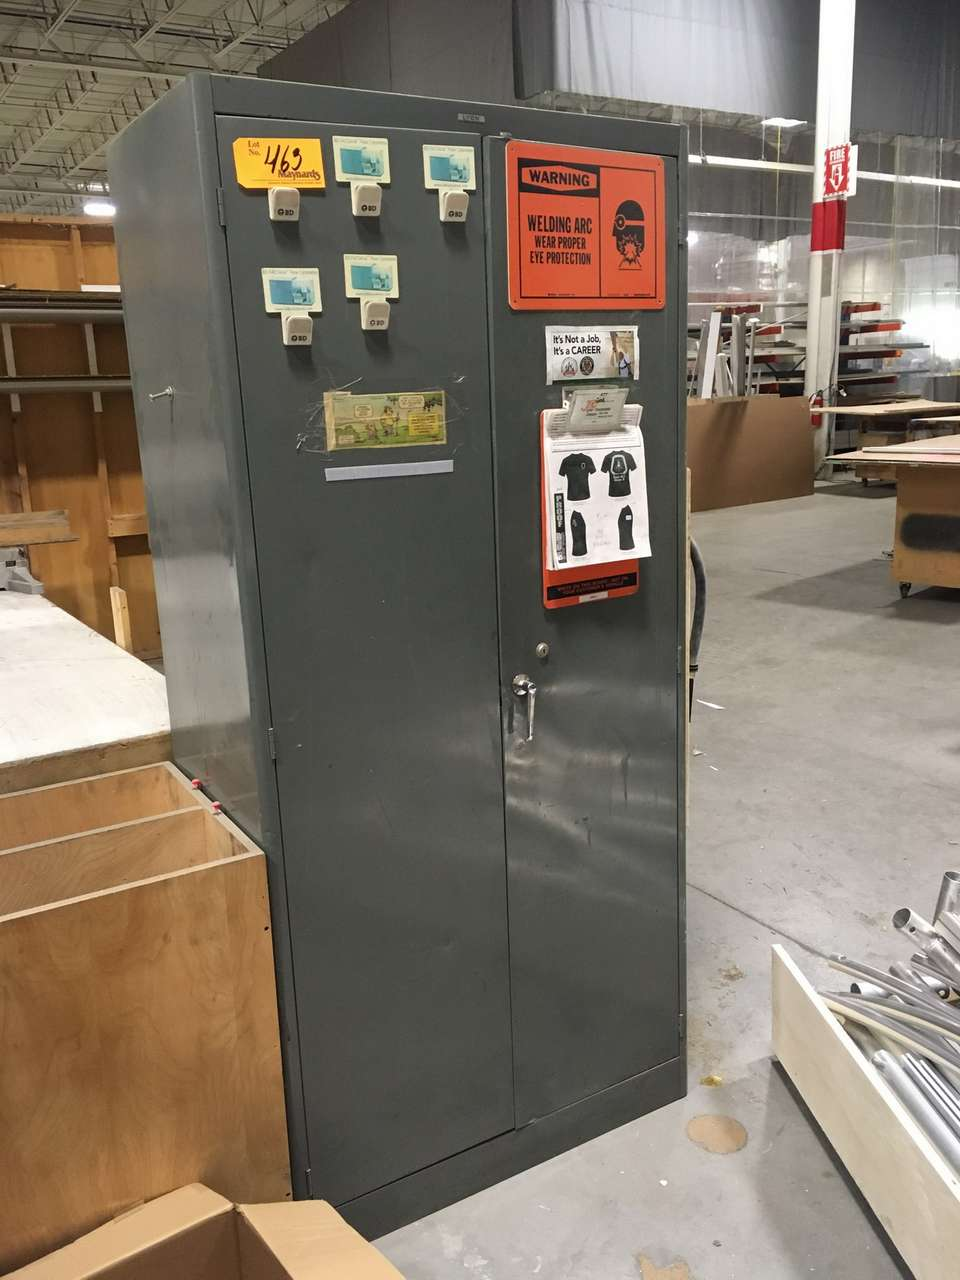 MG Design Associates, Pleasant Prairie, WI Location, Featuring: Late Model As New As 2016 Woodworking Equipment, Mobile Equipment & More